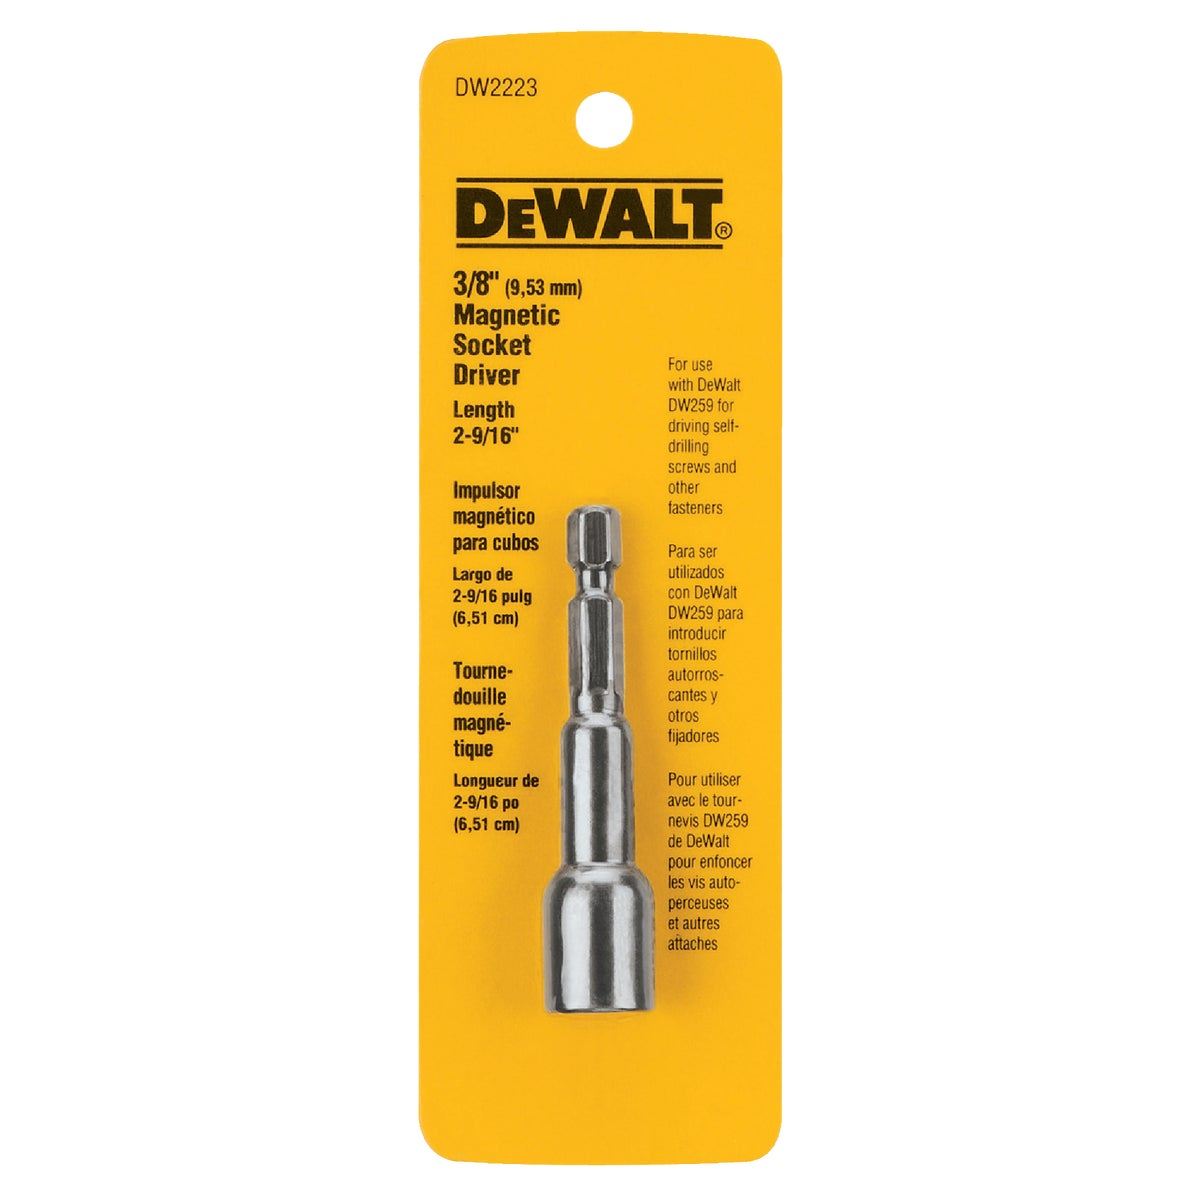 "3/8"" MAGNETIC NUT DRIVER - DW2223 by DeWalt"